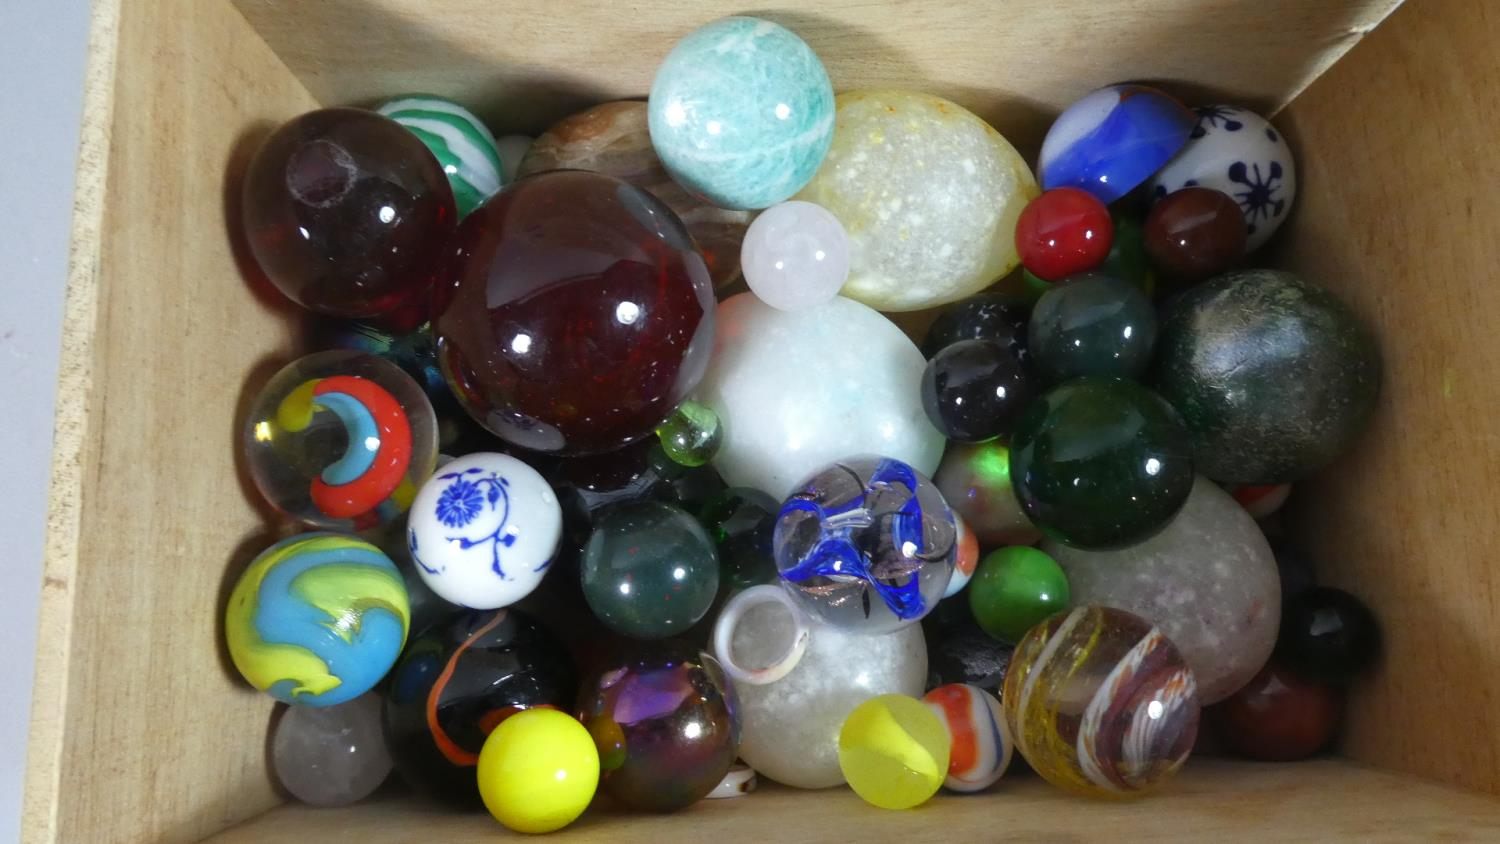 Lot 169 - A Collection of Various Coloured Glass Marbles, Stone Eggs etc